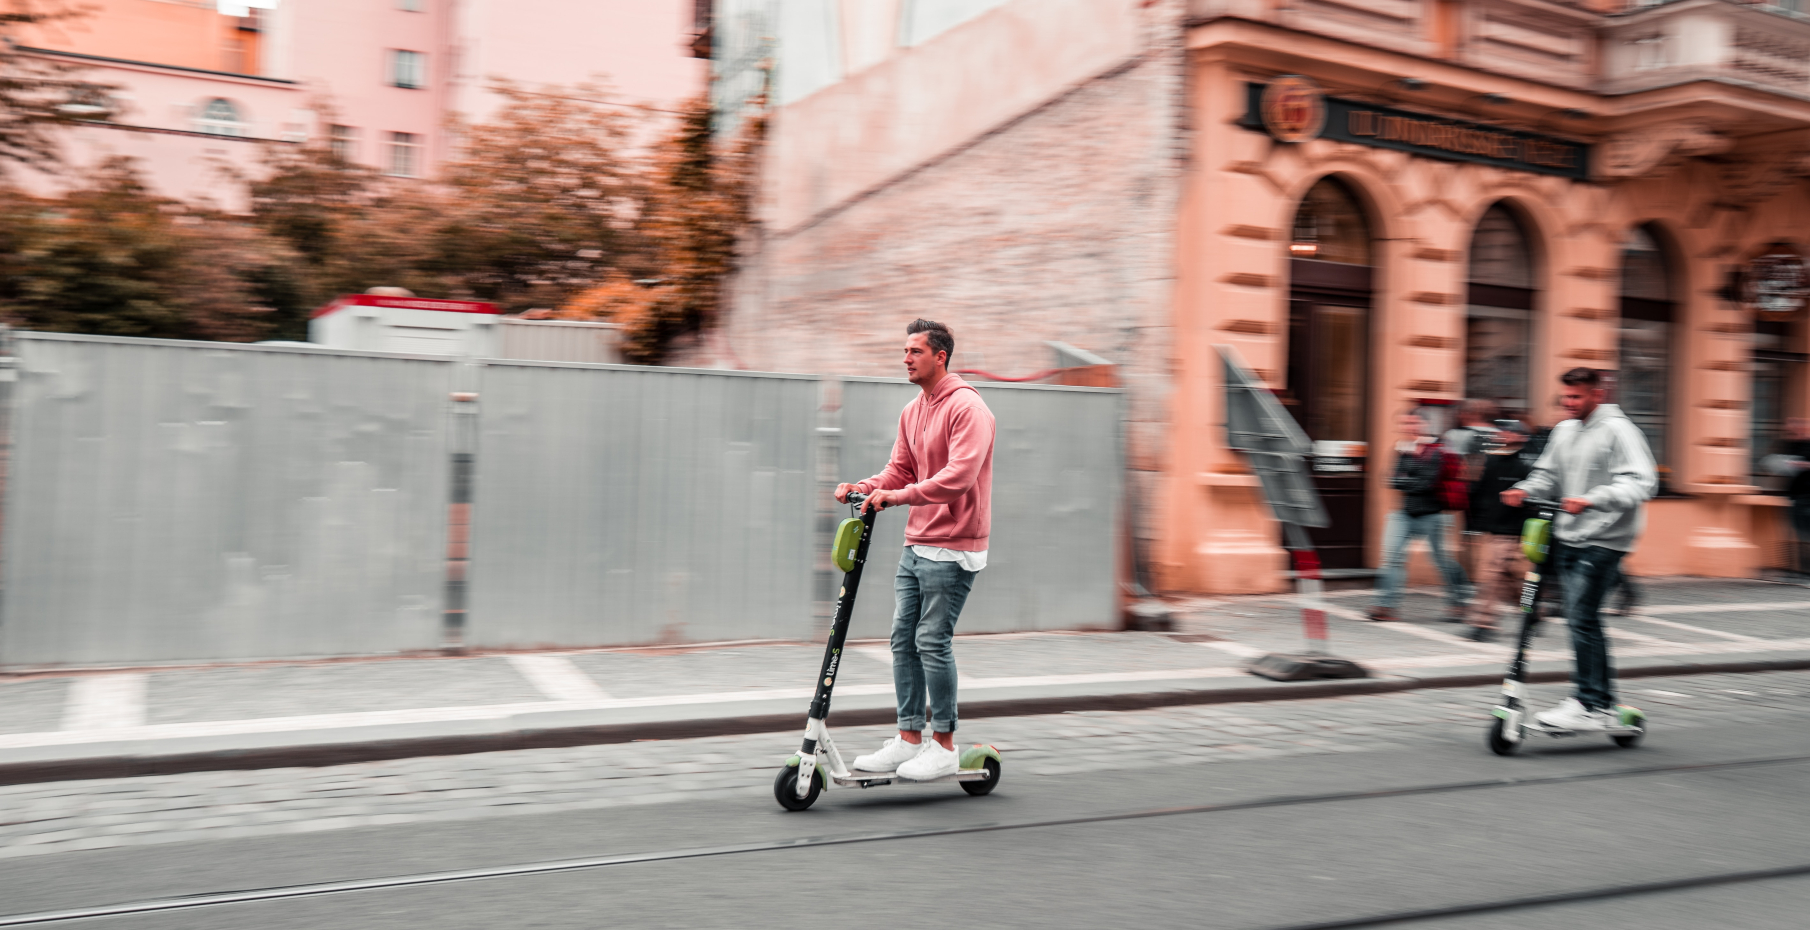 Injuries from electric scooters, via scooter sharing services, have skyrocketed with the growing rates of use. But who is really liable for the increase in accidents and subsequent lawsuits?